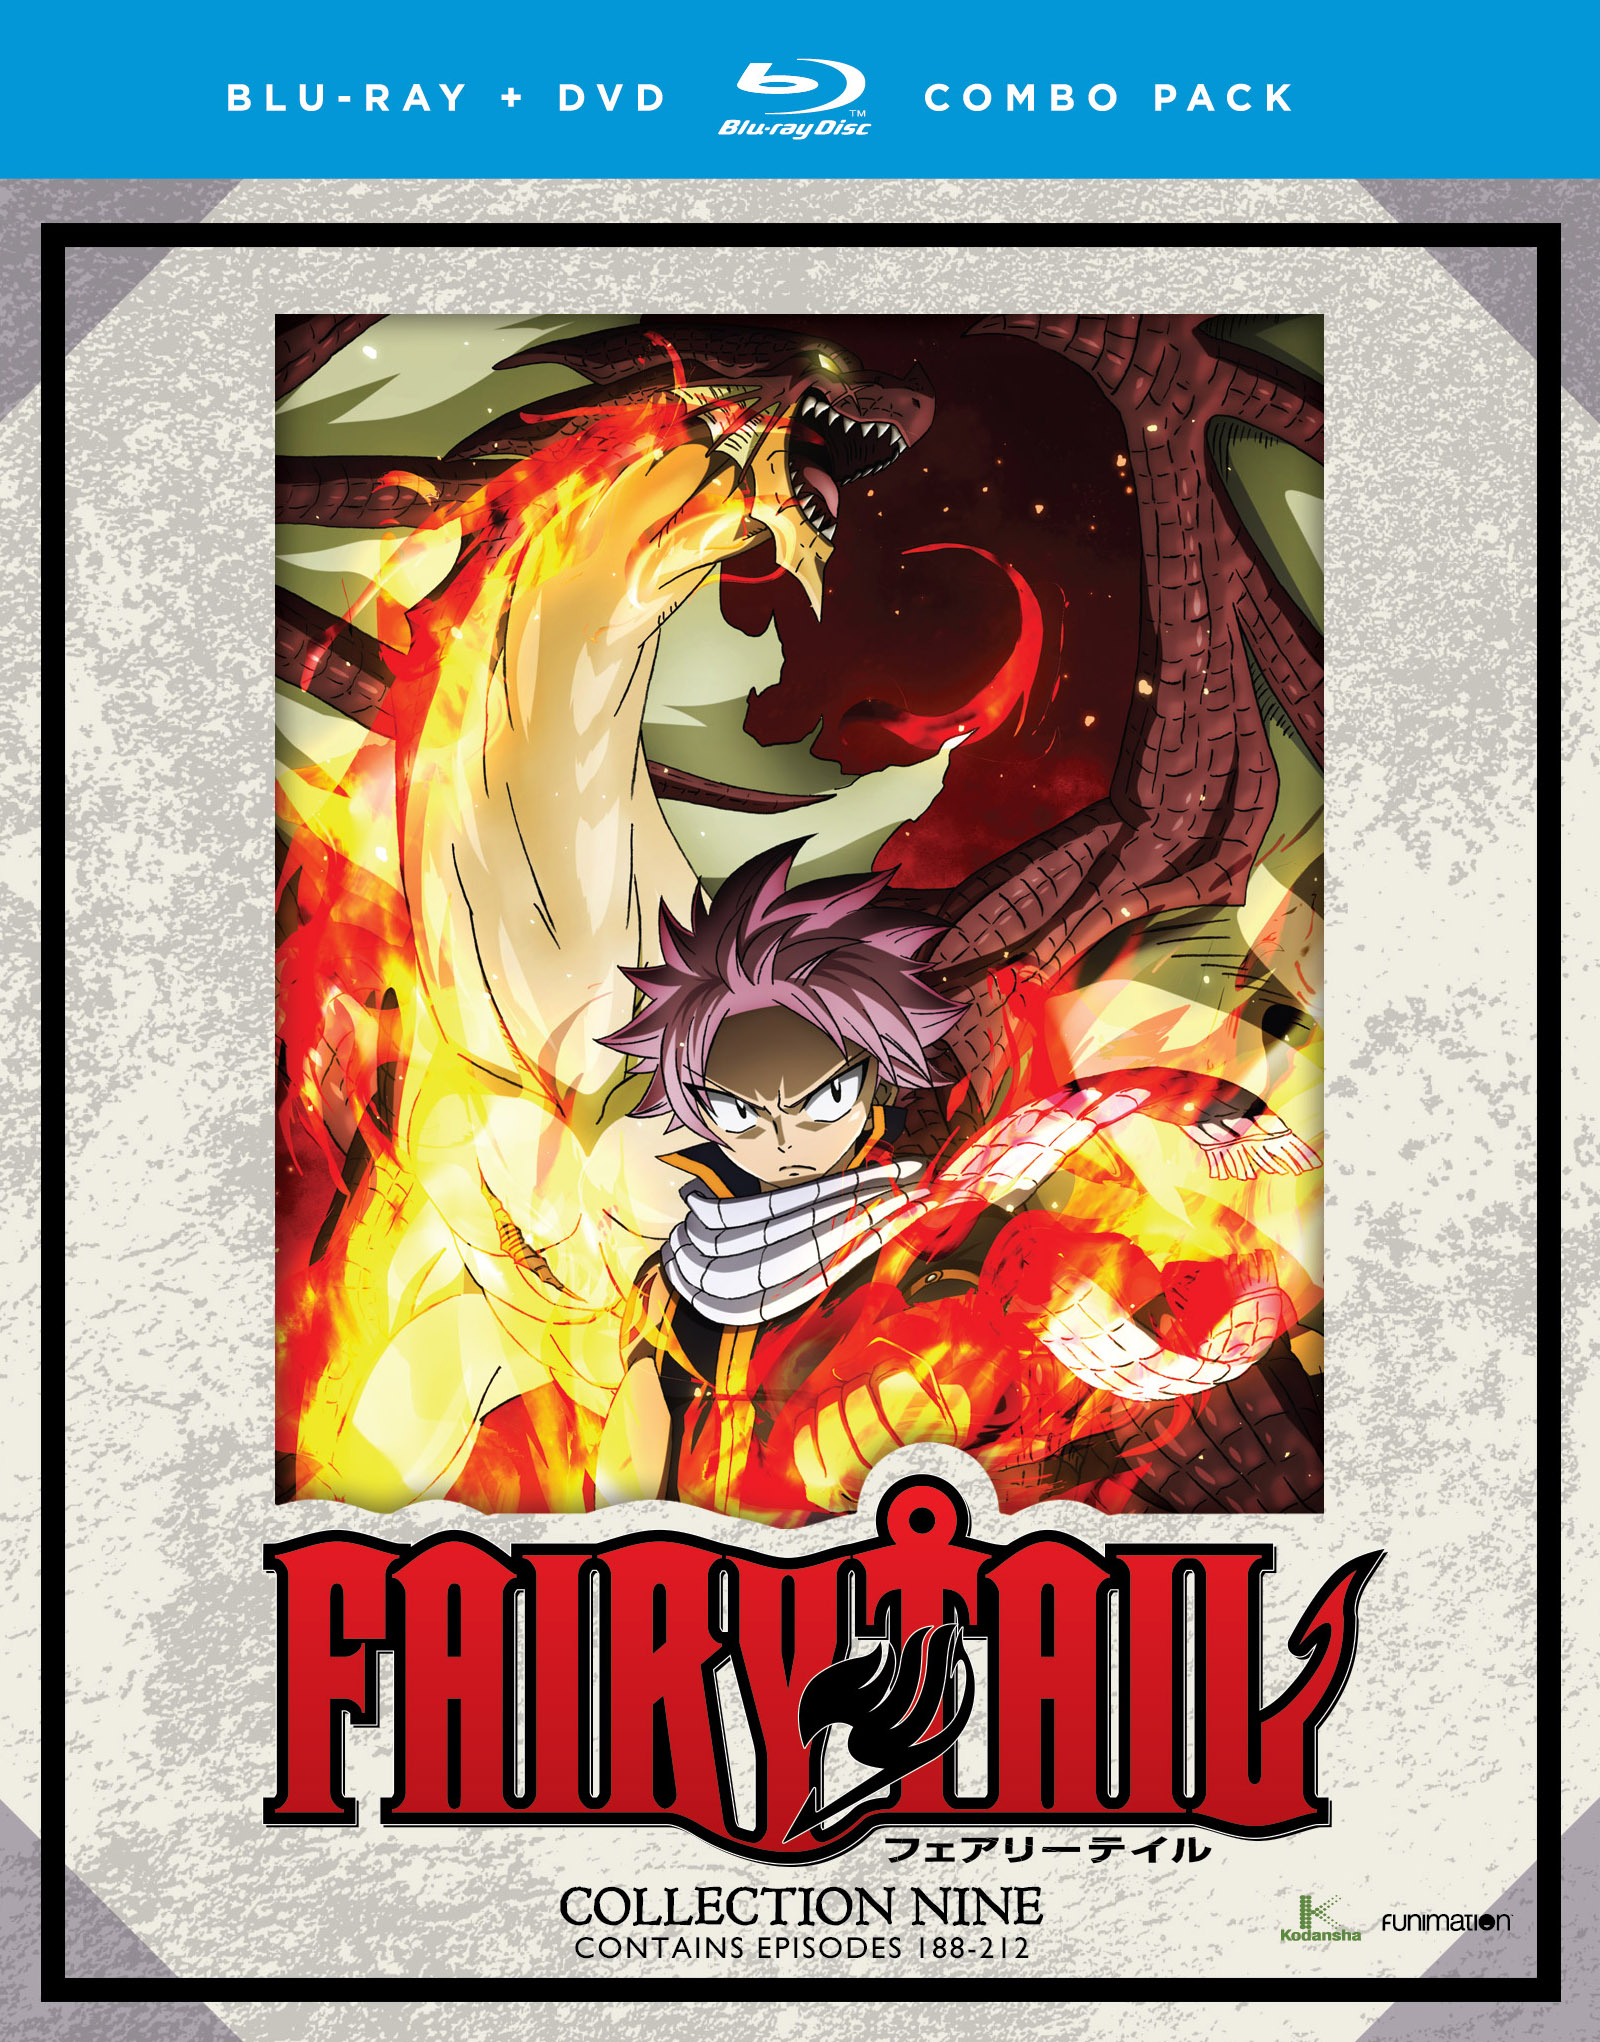 Fairy Tail Collection 9 Blu-ray/DVD 704400017643